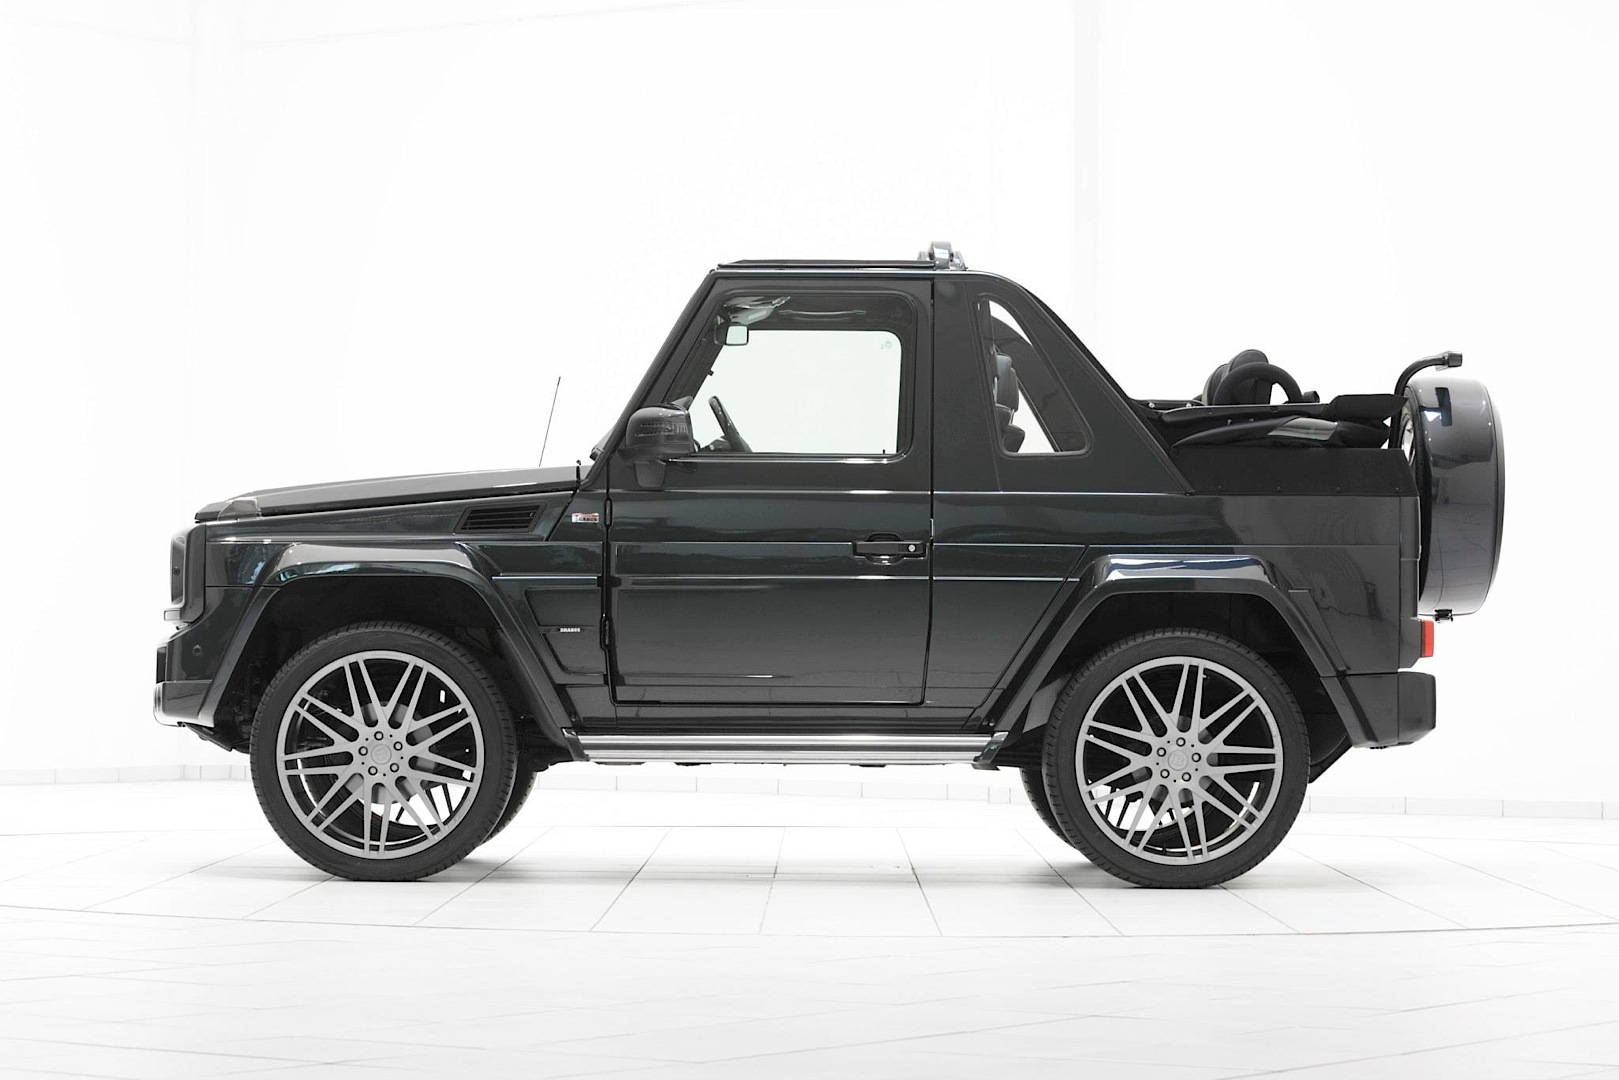 brabus g class cabrio looks too evil for st tropez. Black Bedroom Furniture Sets. Home Design Ideas